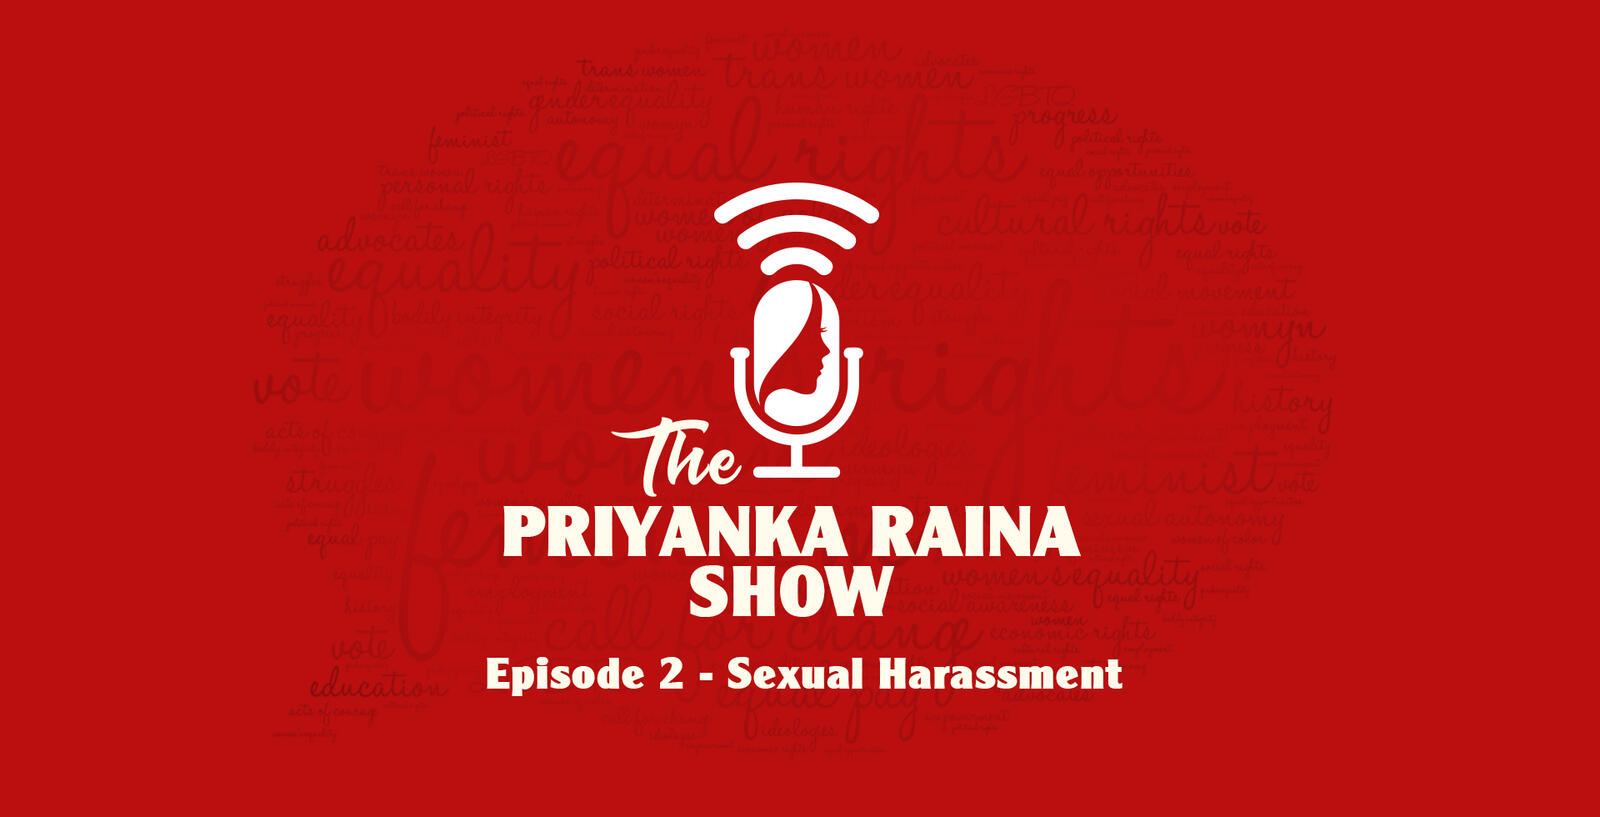 2: Rj Priyanka Raina talks about Sexual Harassment